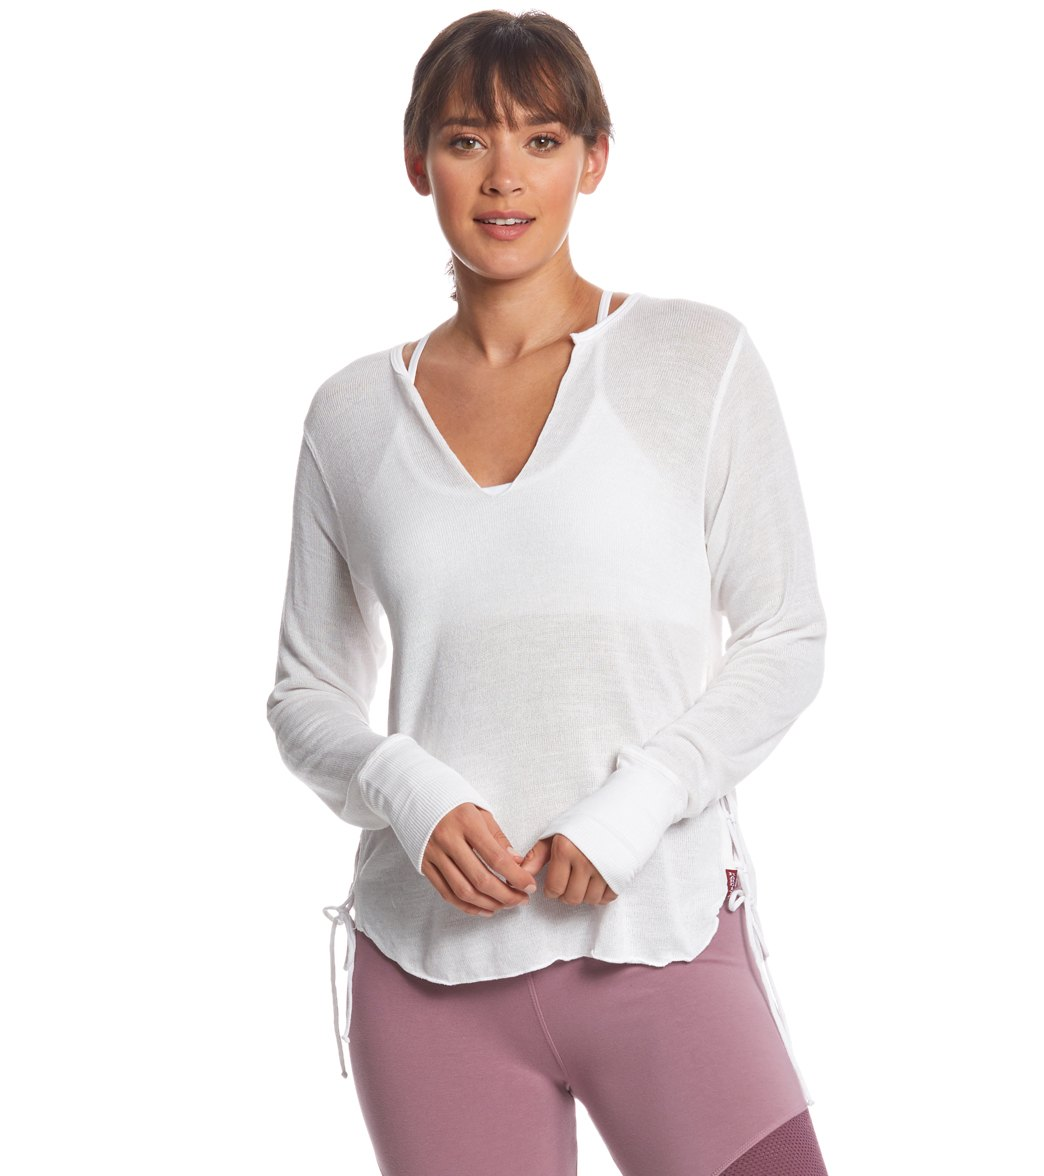 This Hard Tail Side Laced Pullover is perfect to throw on after yoga to meet up with friends or to finish your errands. Its soft sweater jersey fabric provides all-day comfort, while lace-up sides and an open front collar gives an on-trend look. Features Women\\\'s long sleeve pullover. Open front collar. Lace-up sides. High-low hemline with raw-edge hem. Ribbed cuffs. Details Fabric(s): 65% Rayon, 32% Polyester, 3% Spandex Color(s): White, Purple Style Features: Solid, Laced Fit: Relaxed Length: A